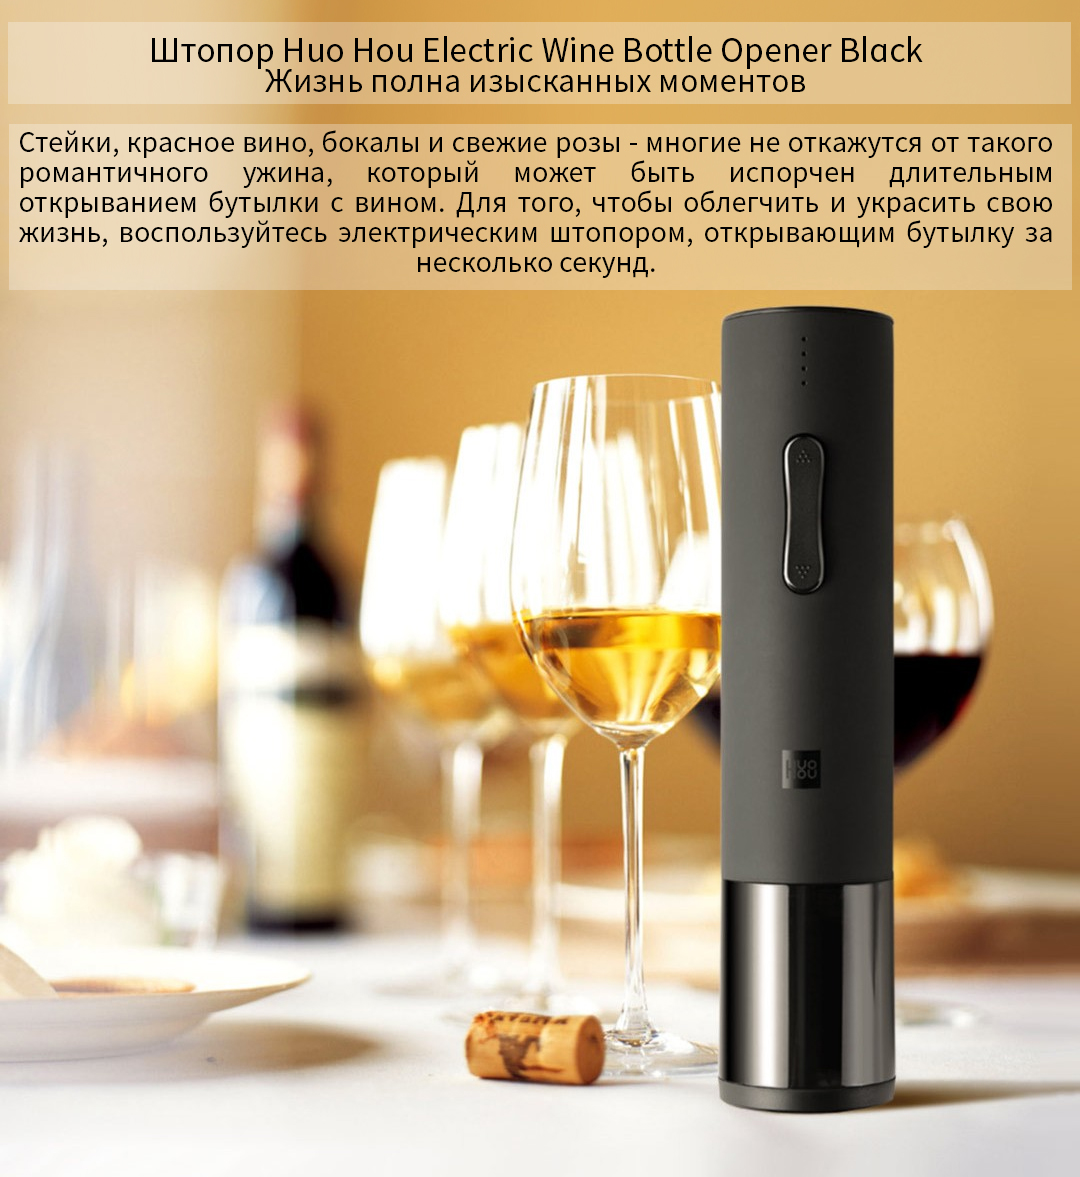 Электрический штопор Xiaomi Huo Hou Electric Wine Bottle Opener